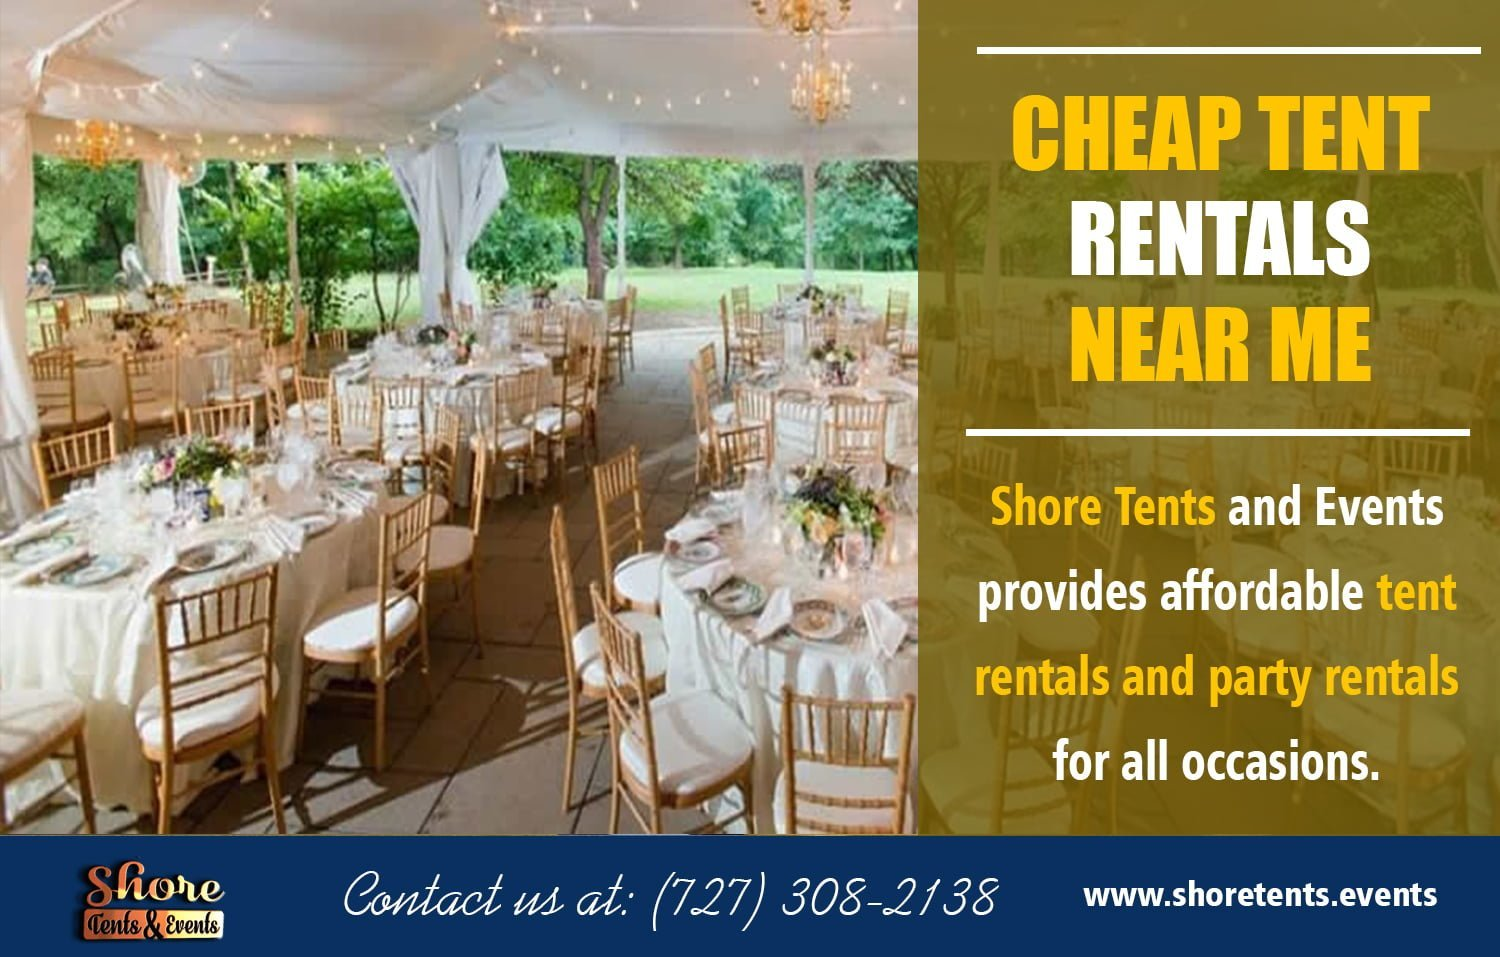 Cheap Tent Rentals Near Me